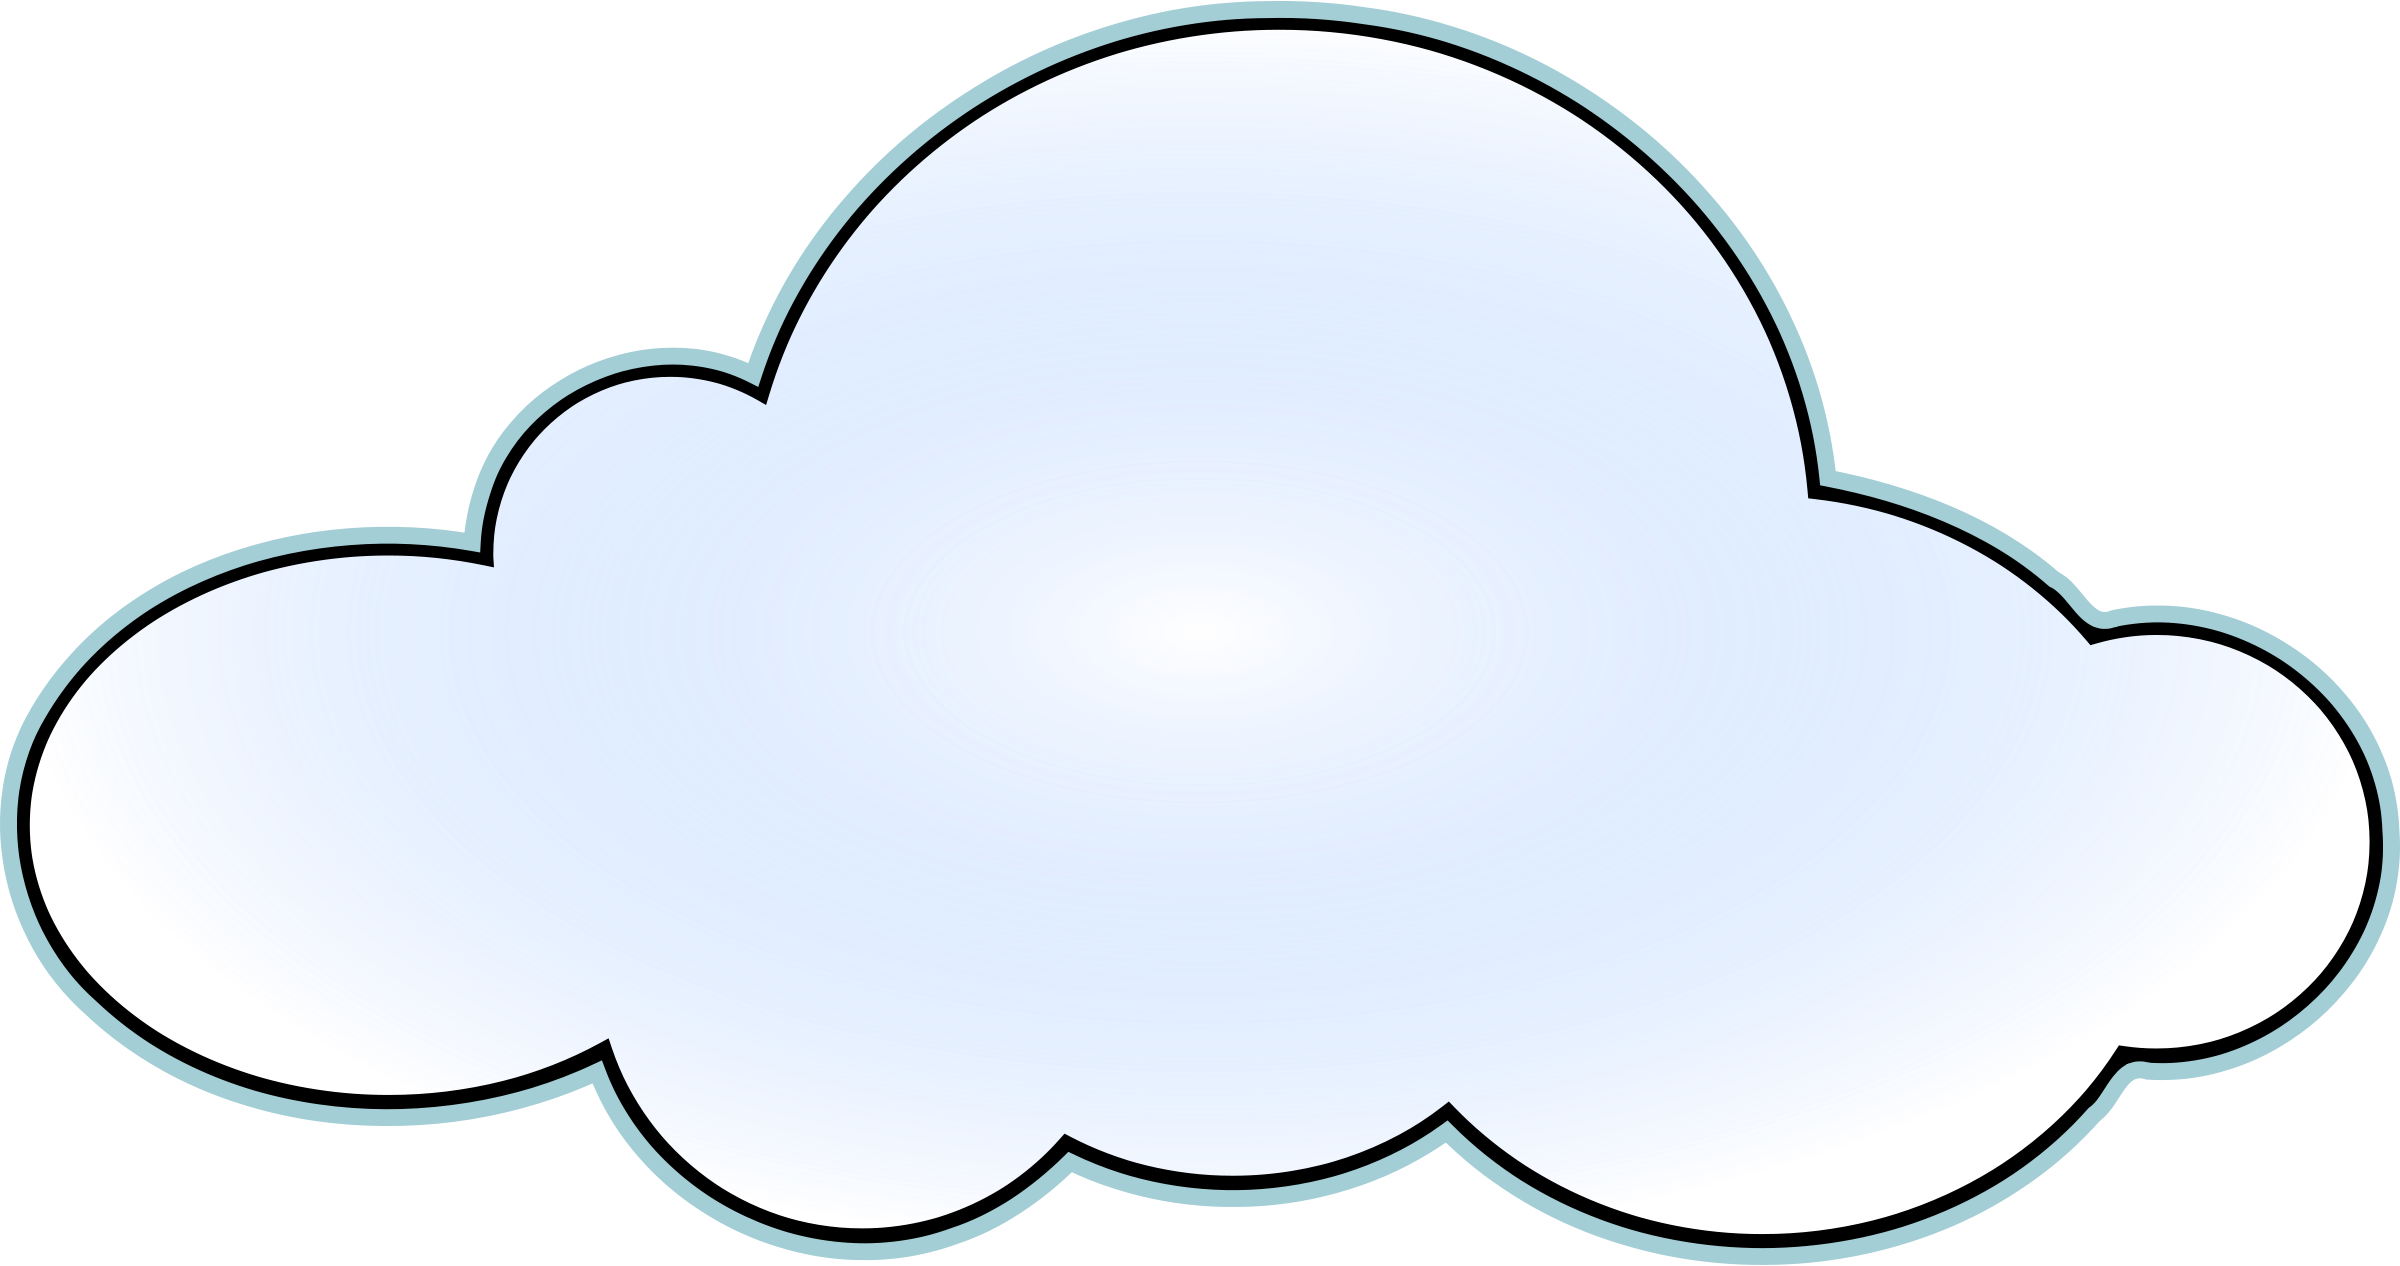 Cloud clipart clipart.